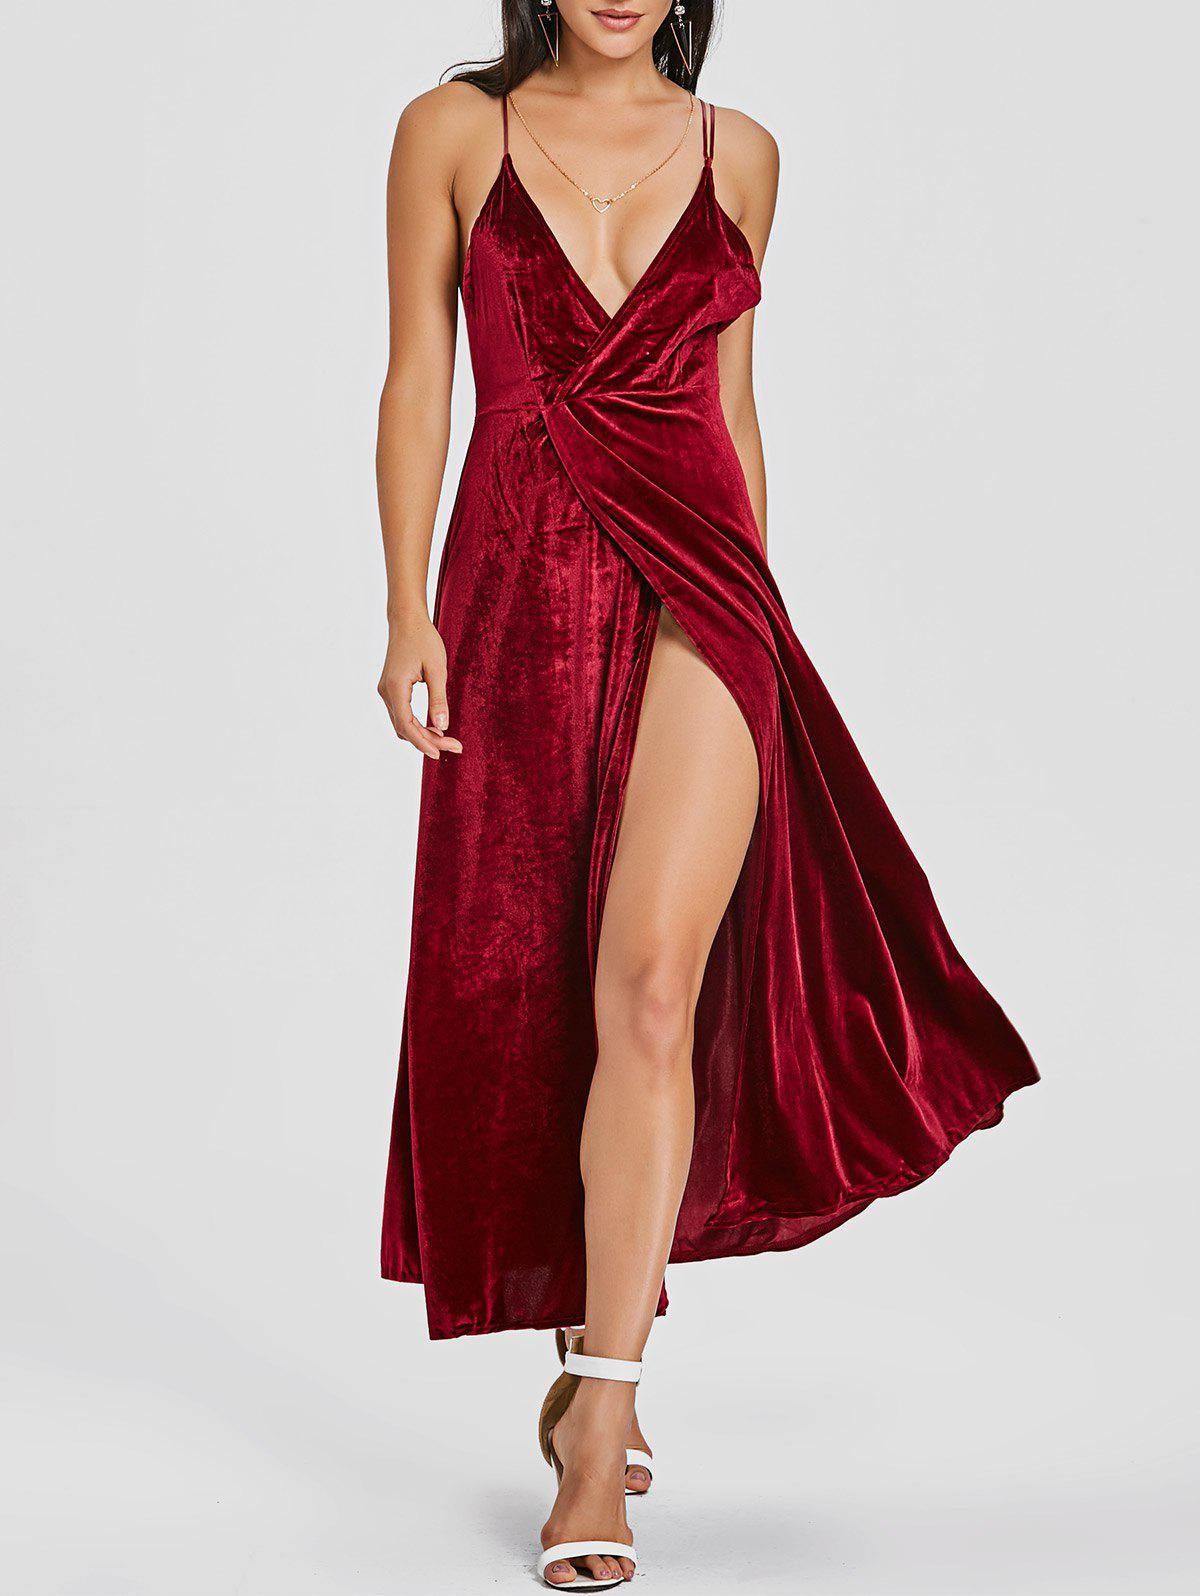 Backless High Slit Velvet Maxi Dress maxi front slit crushed velvet tank dress